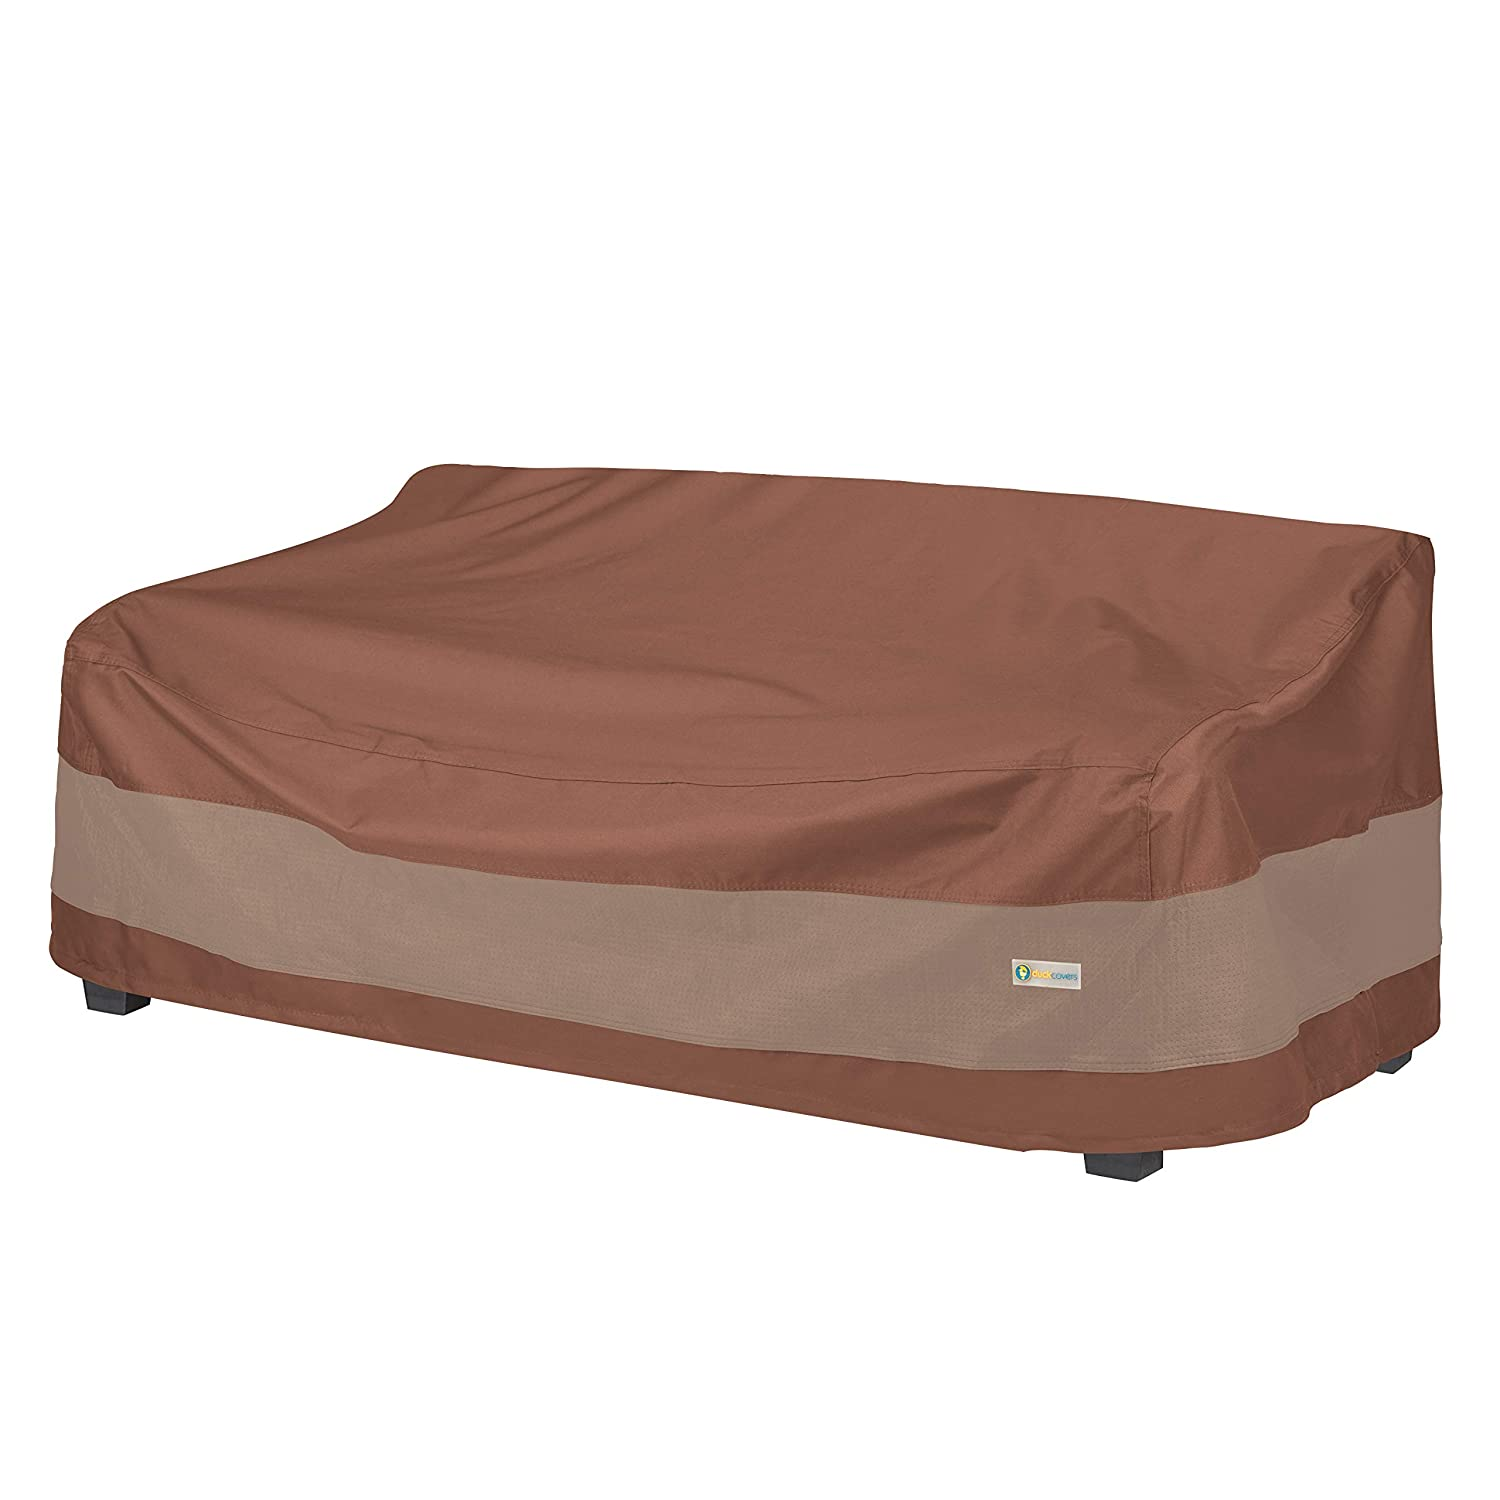 Duck Covers Ultimate Patio Sofa Cover, 104-Inch